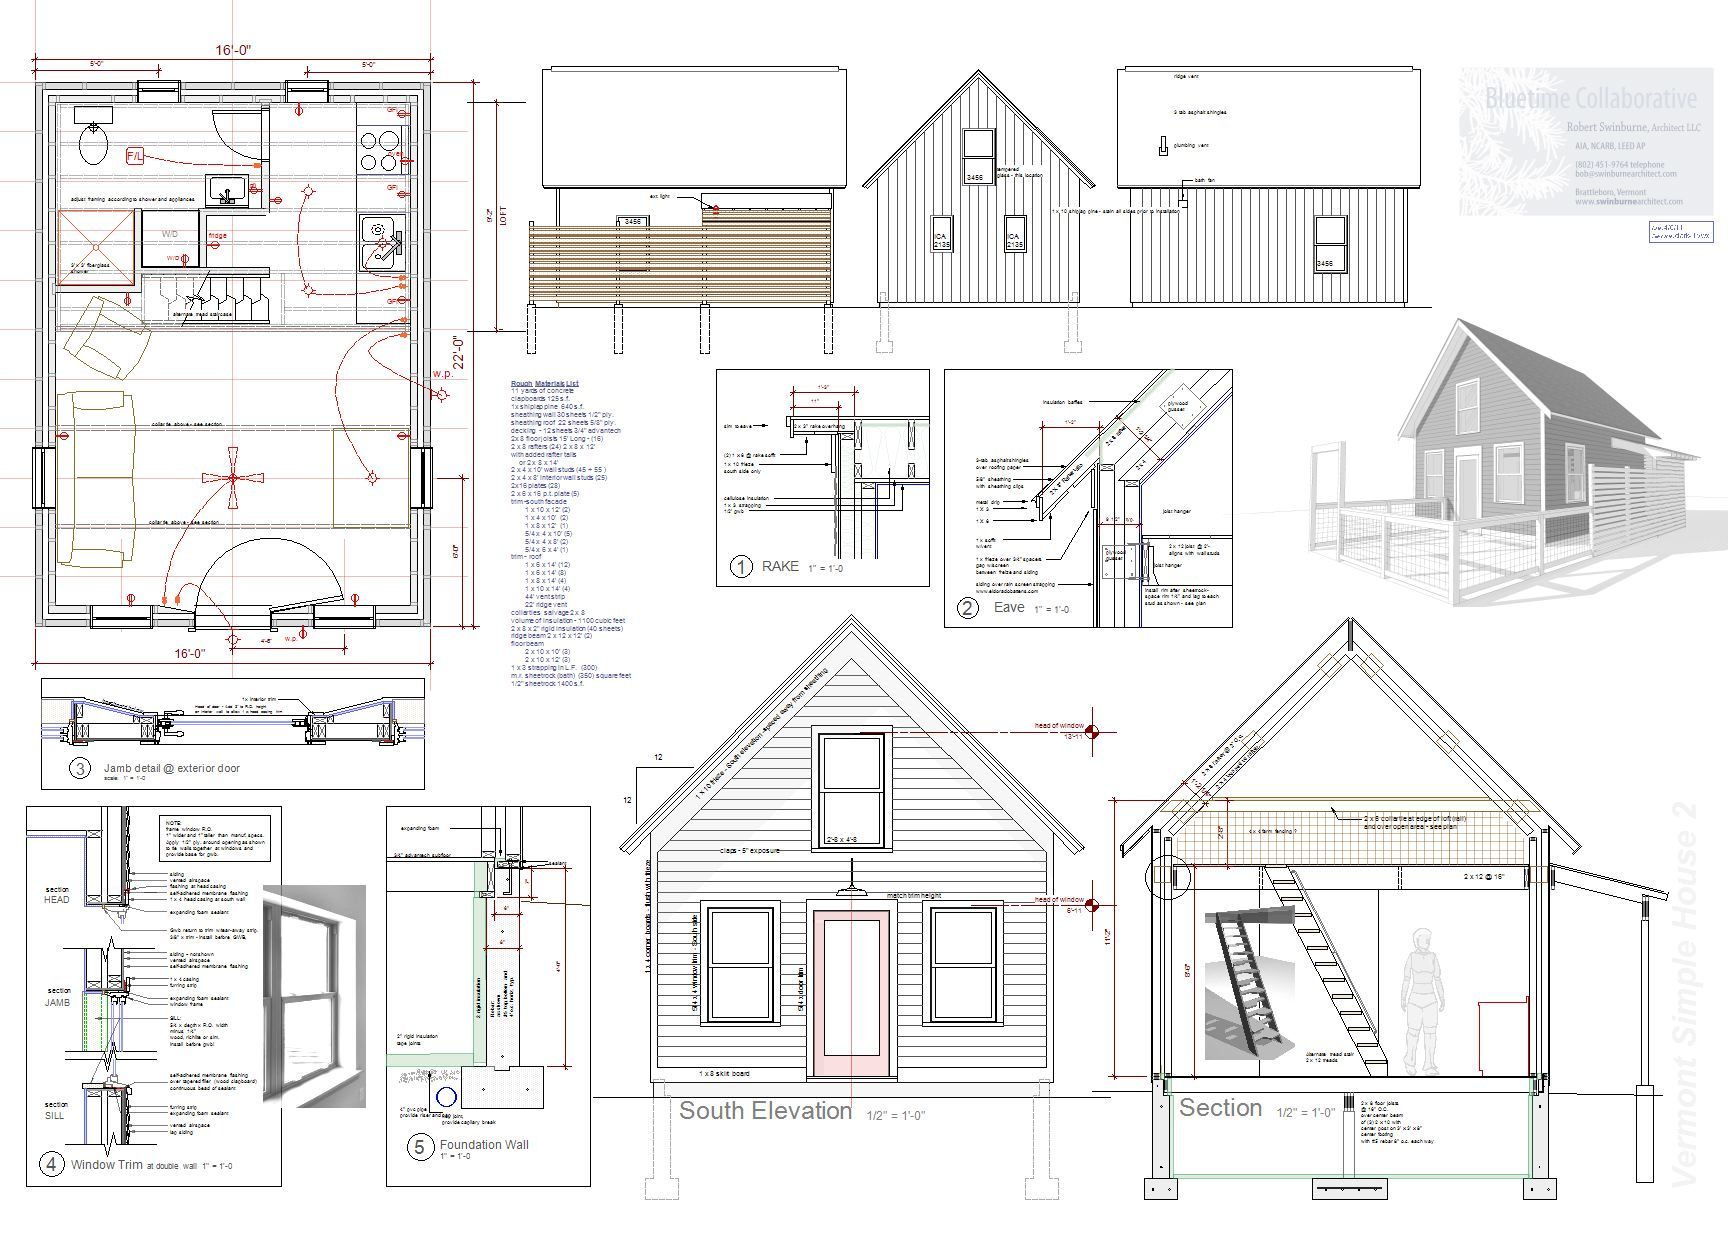 tiny home designs plans. How to Build a Tiny House  house plans houses and